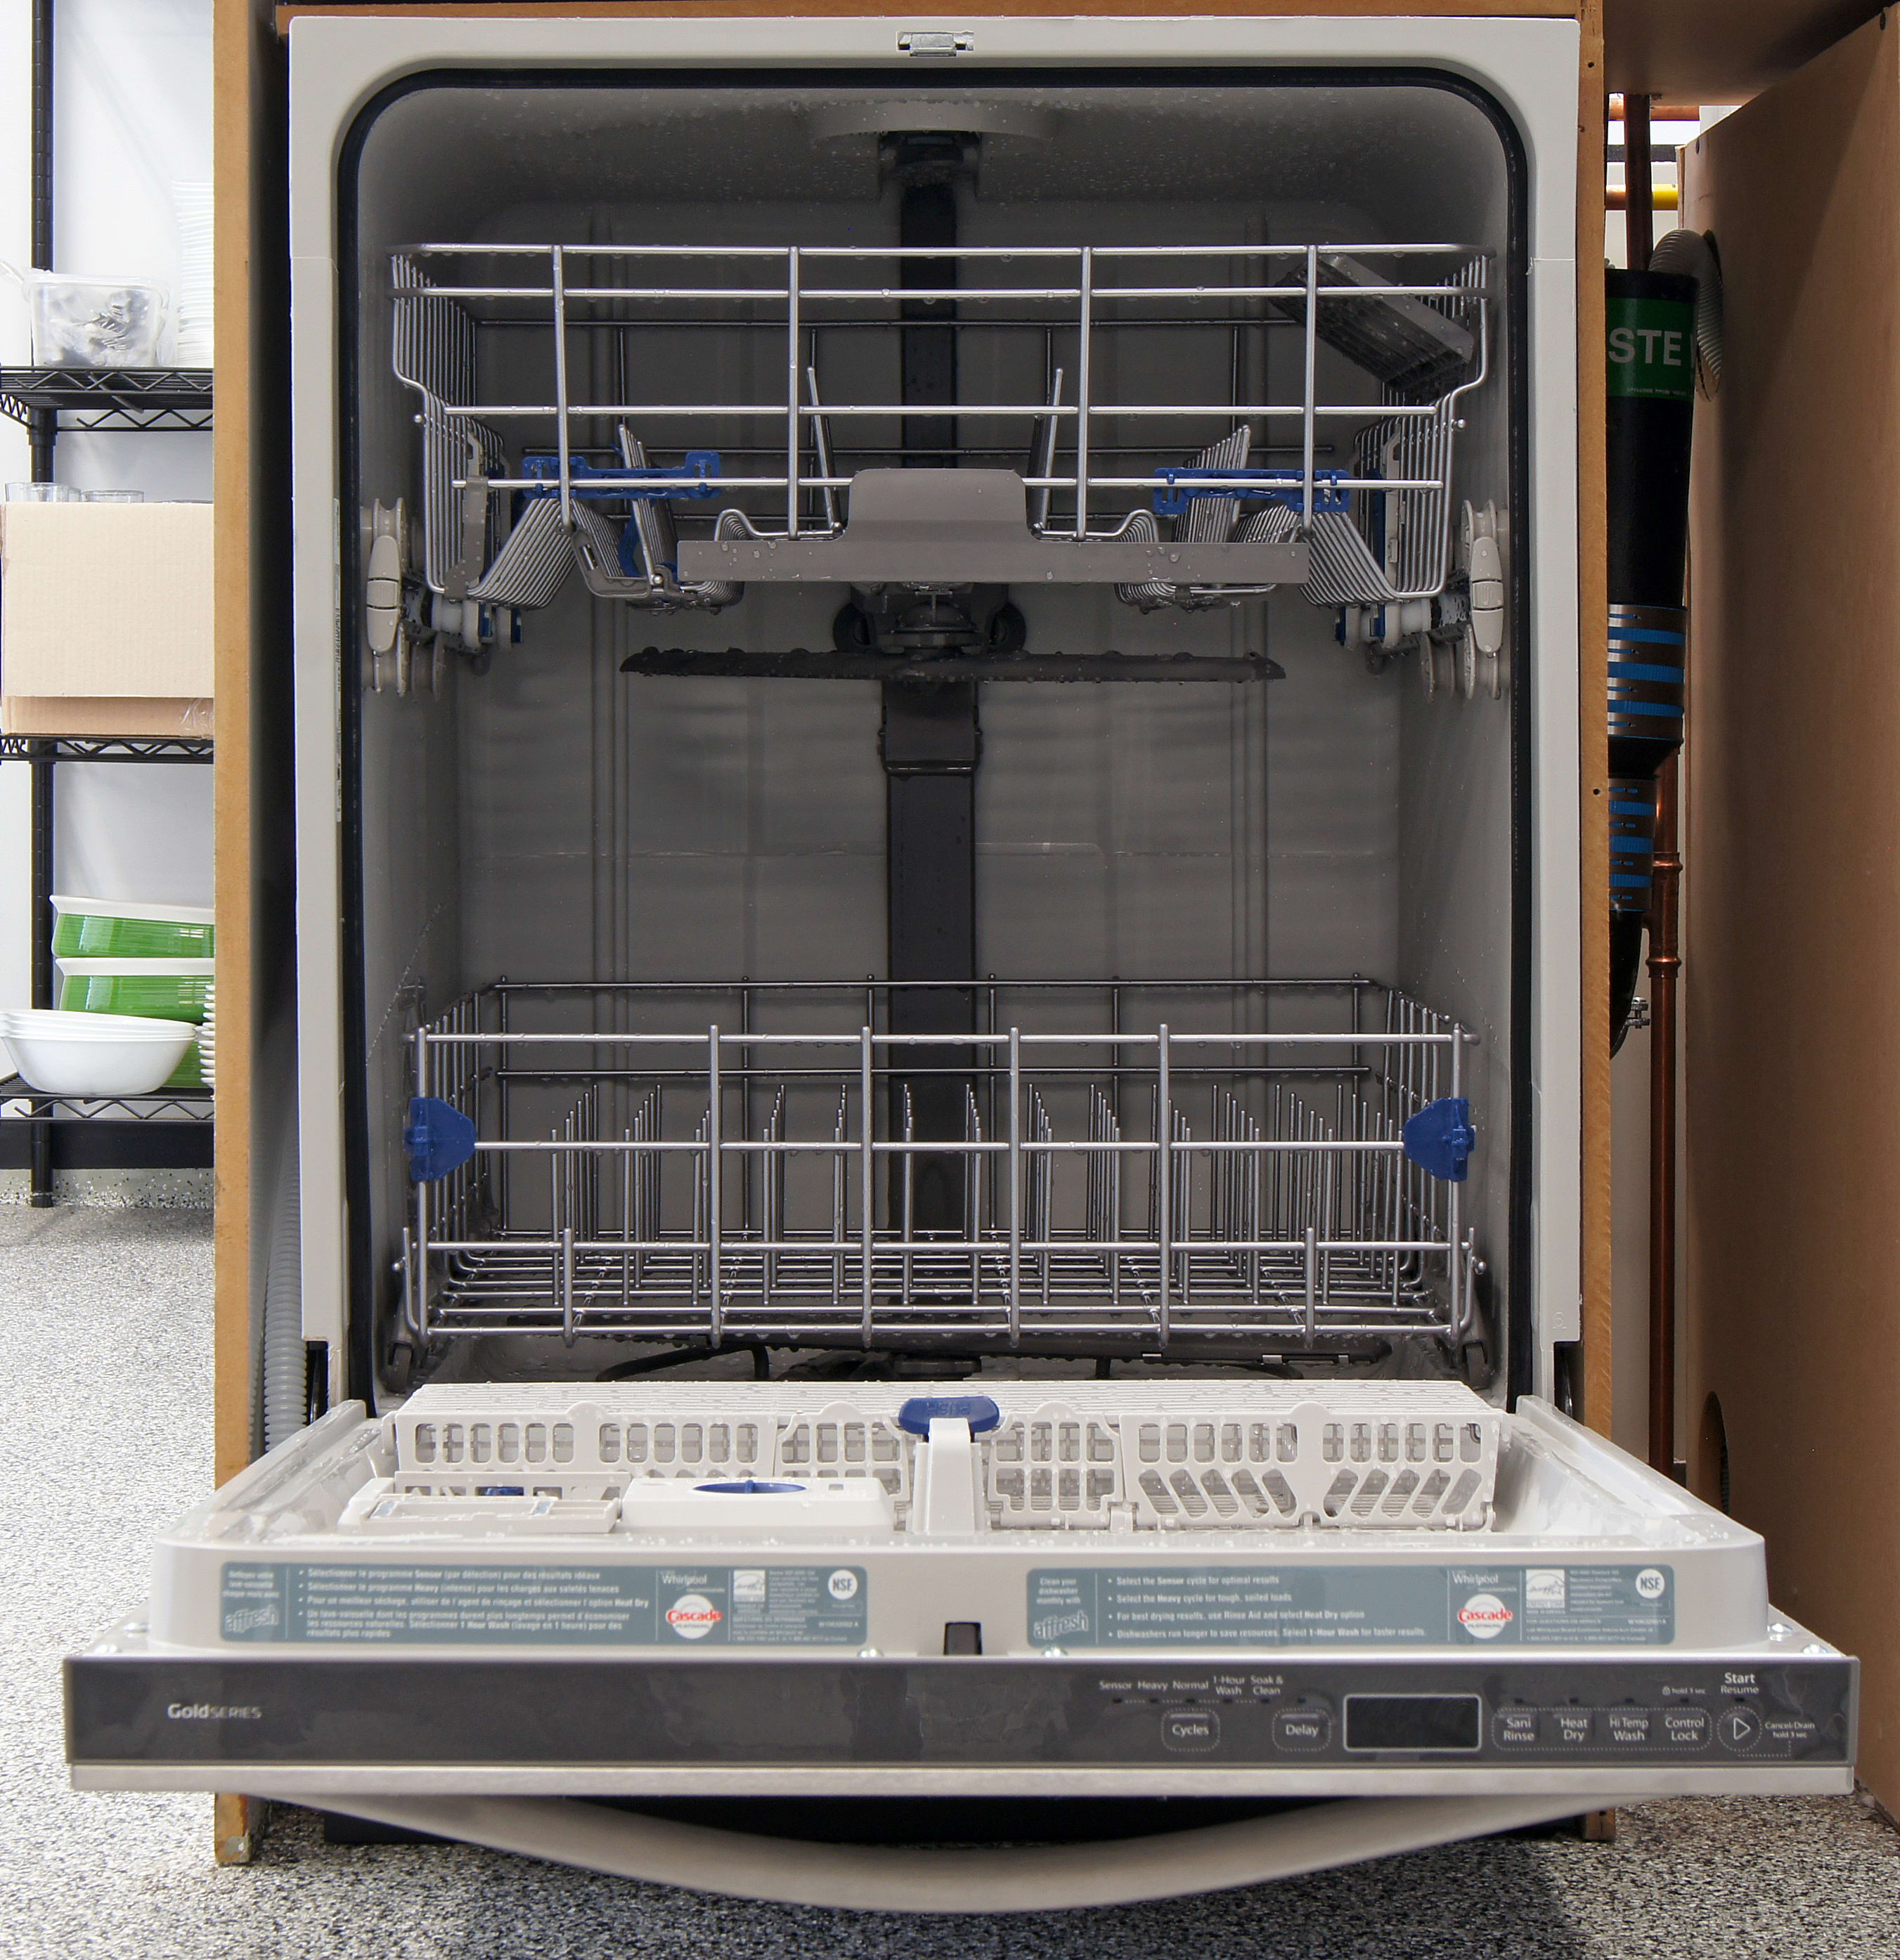 Whirlpool Gold Wdt720padm Dishwasher Review Reviewed Com